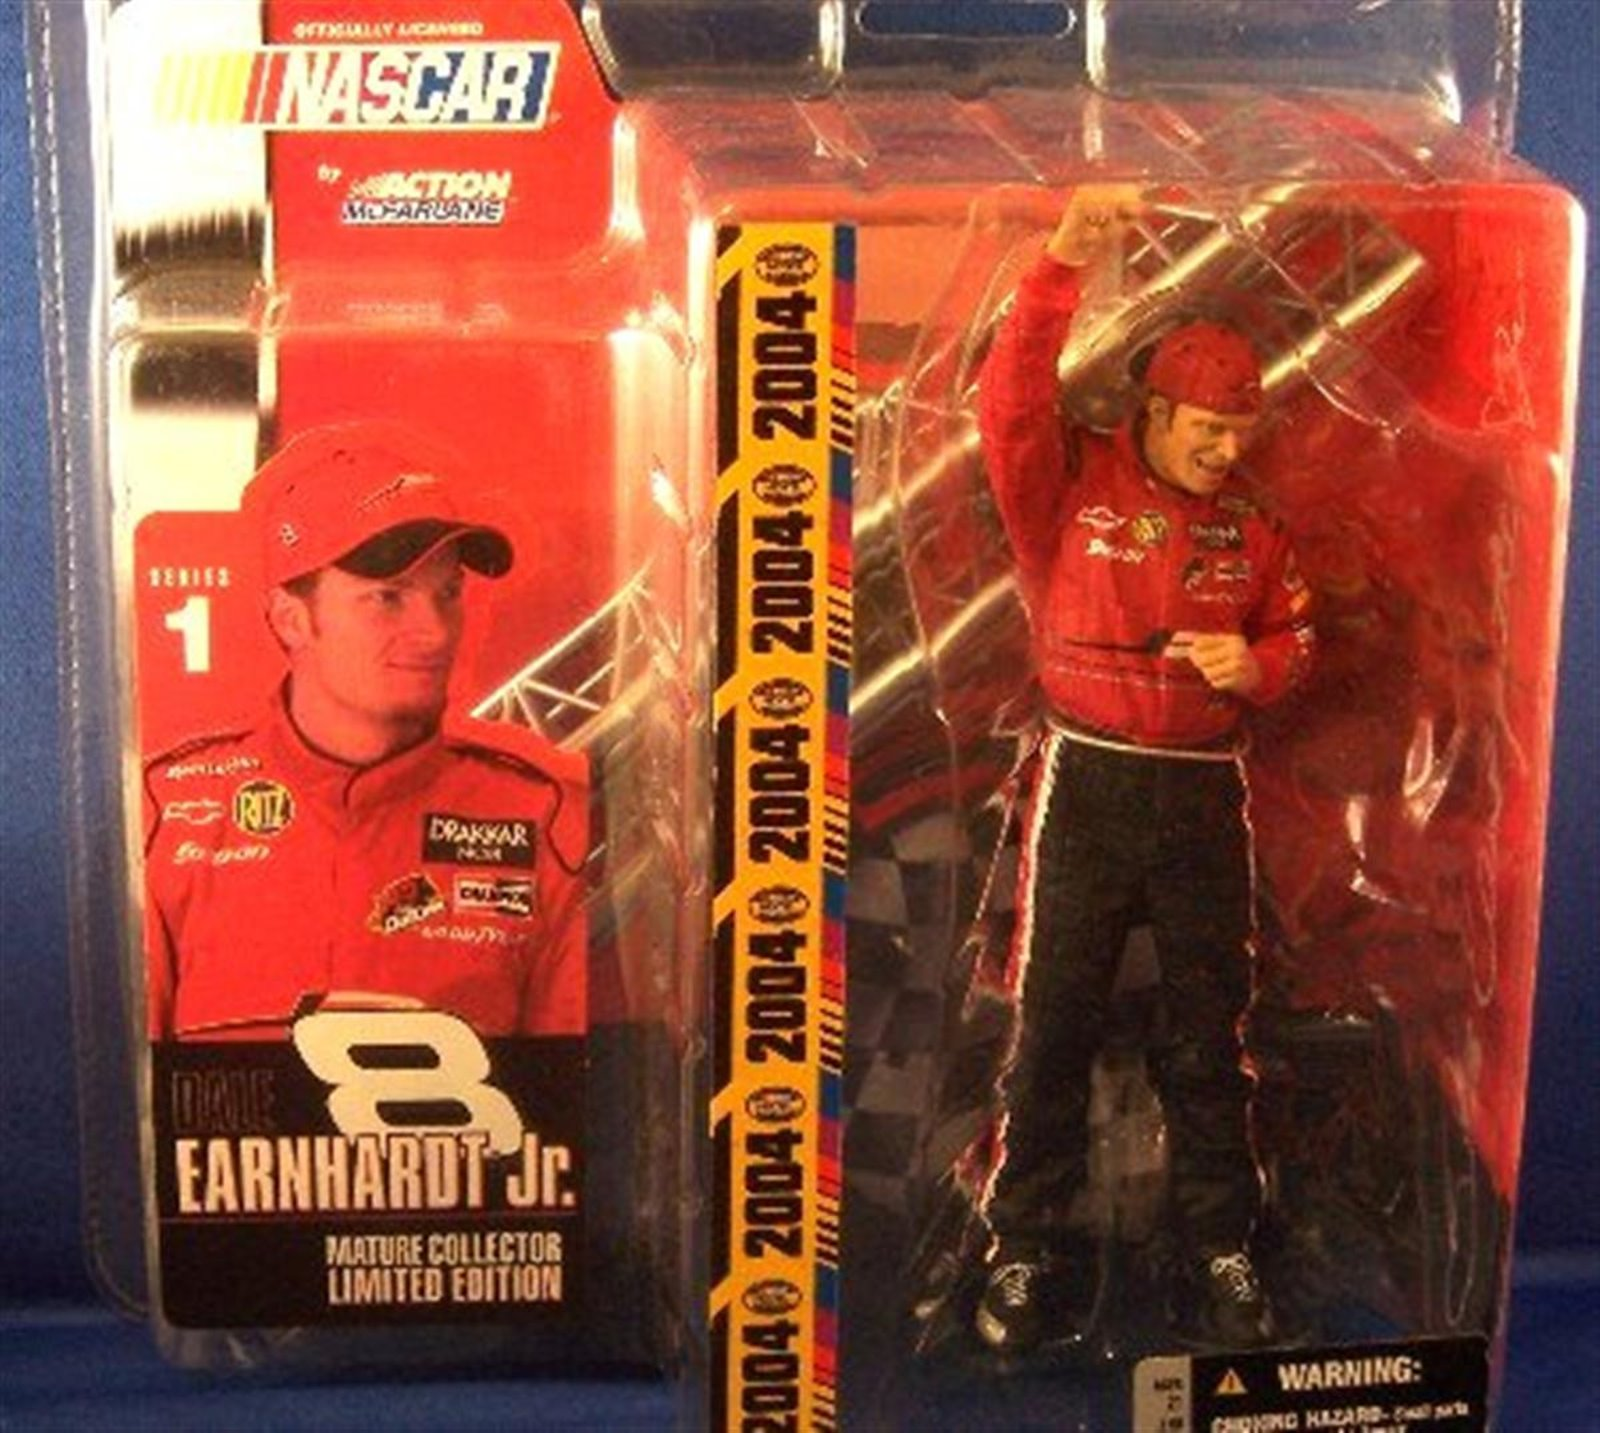 Dale Earnhardt Jr Series 1 McFarlane Mature Collectors Limited Edition